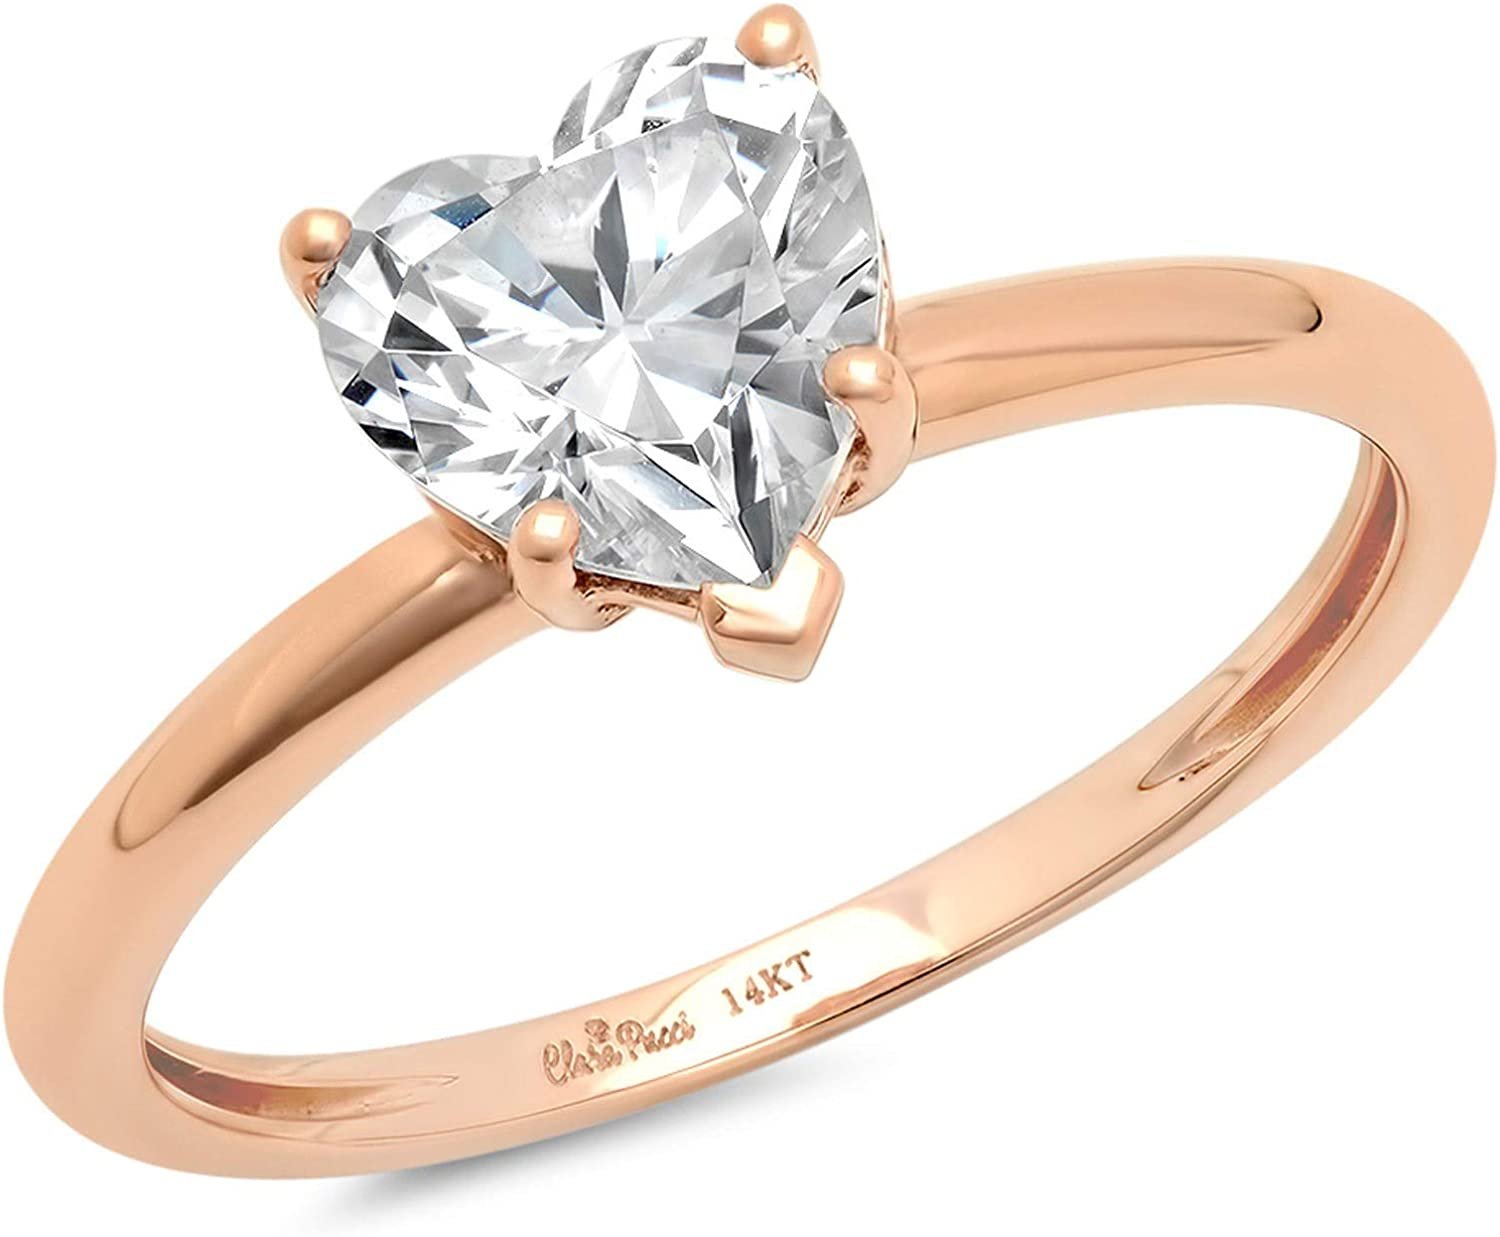 0.9ct Brilliant Heart Cut Solitaire Stunning Genuine Lab Created White Sapphire Ideal VVS1 D 5-Prong Engagement Wedding Bridal Promise Anniversary Ring Solid 14k Rose Gold for Women